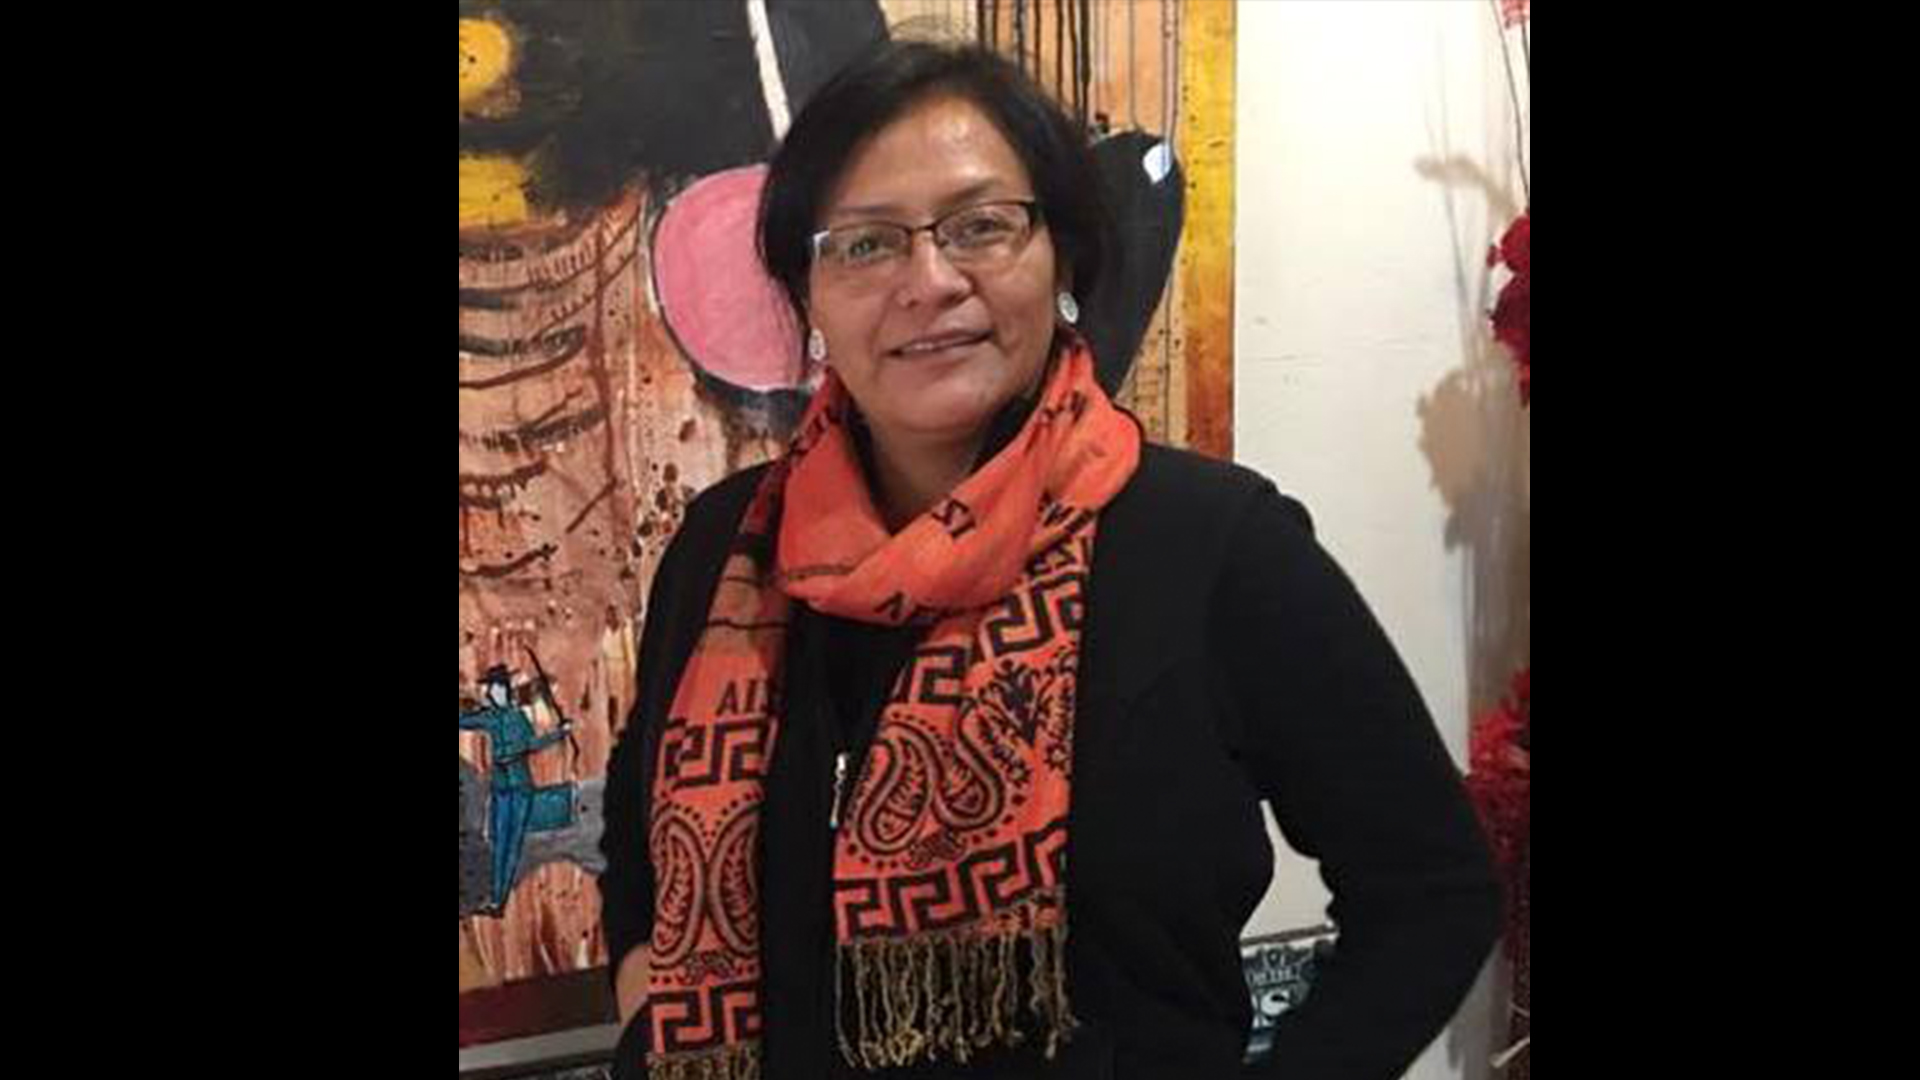 Havasupai Tribal Council Member Carletta Tilousi tapped to join the White House Environmental Justice Advisory Council in 2021.